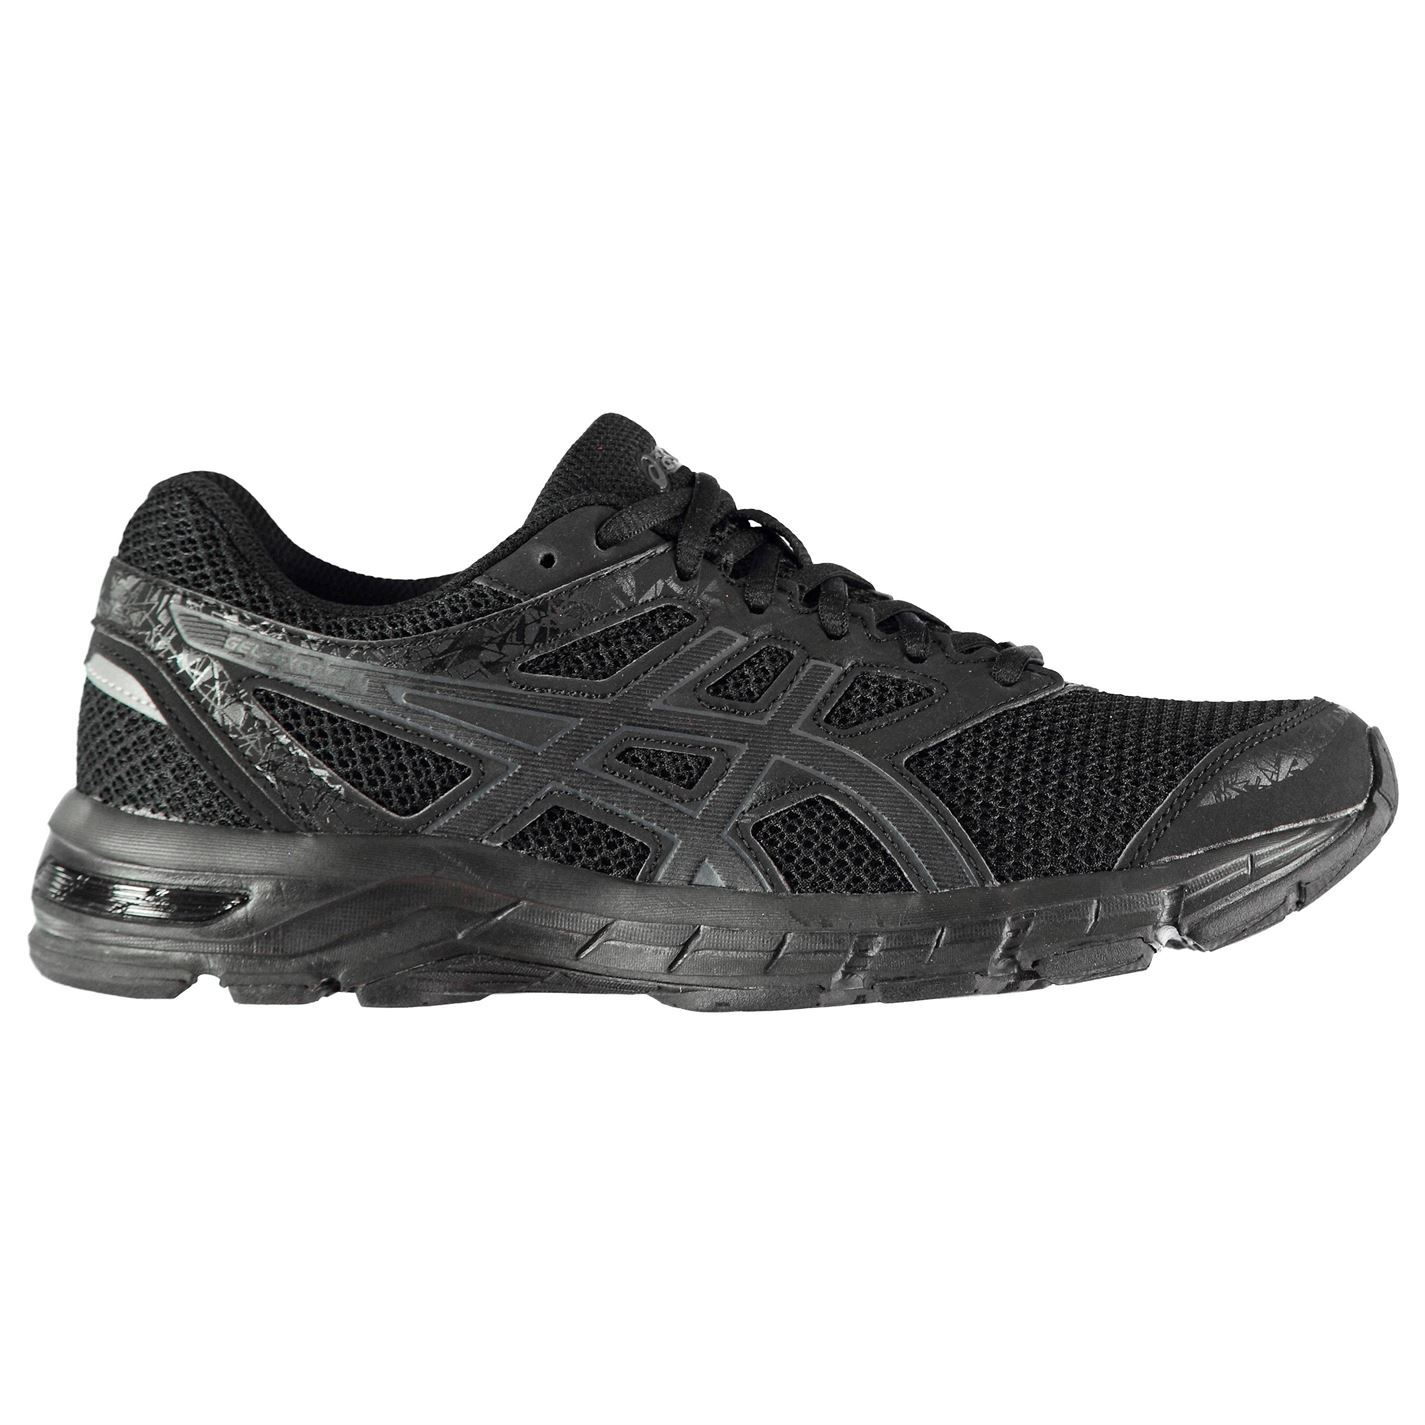 Asics hommes Gel Excite 4 Running Trainers Road Chaussures Lace Up Breathable Padded